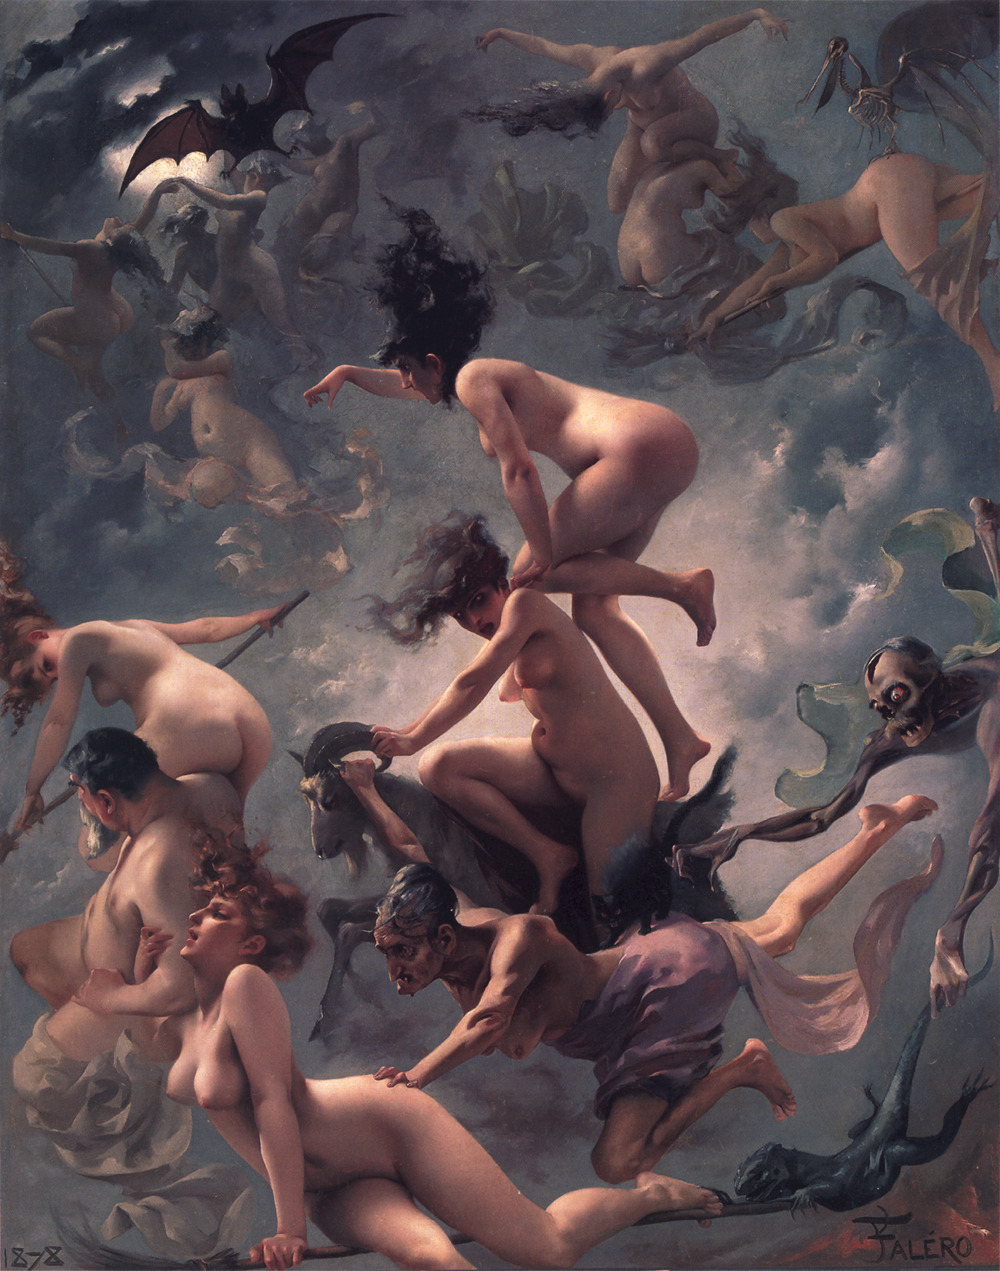 victoriamonserrath:  Departure of the Witches, 1878 by Luis Ricardo Falero.